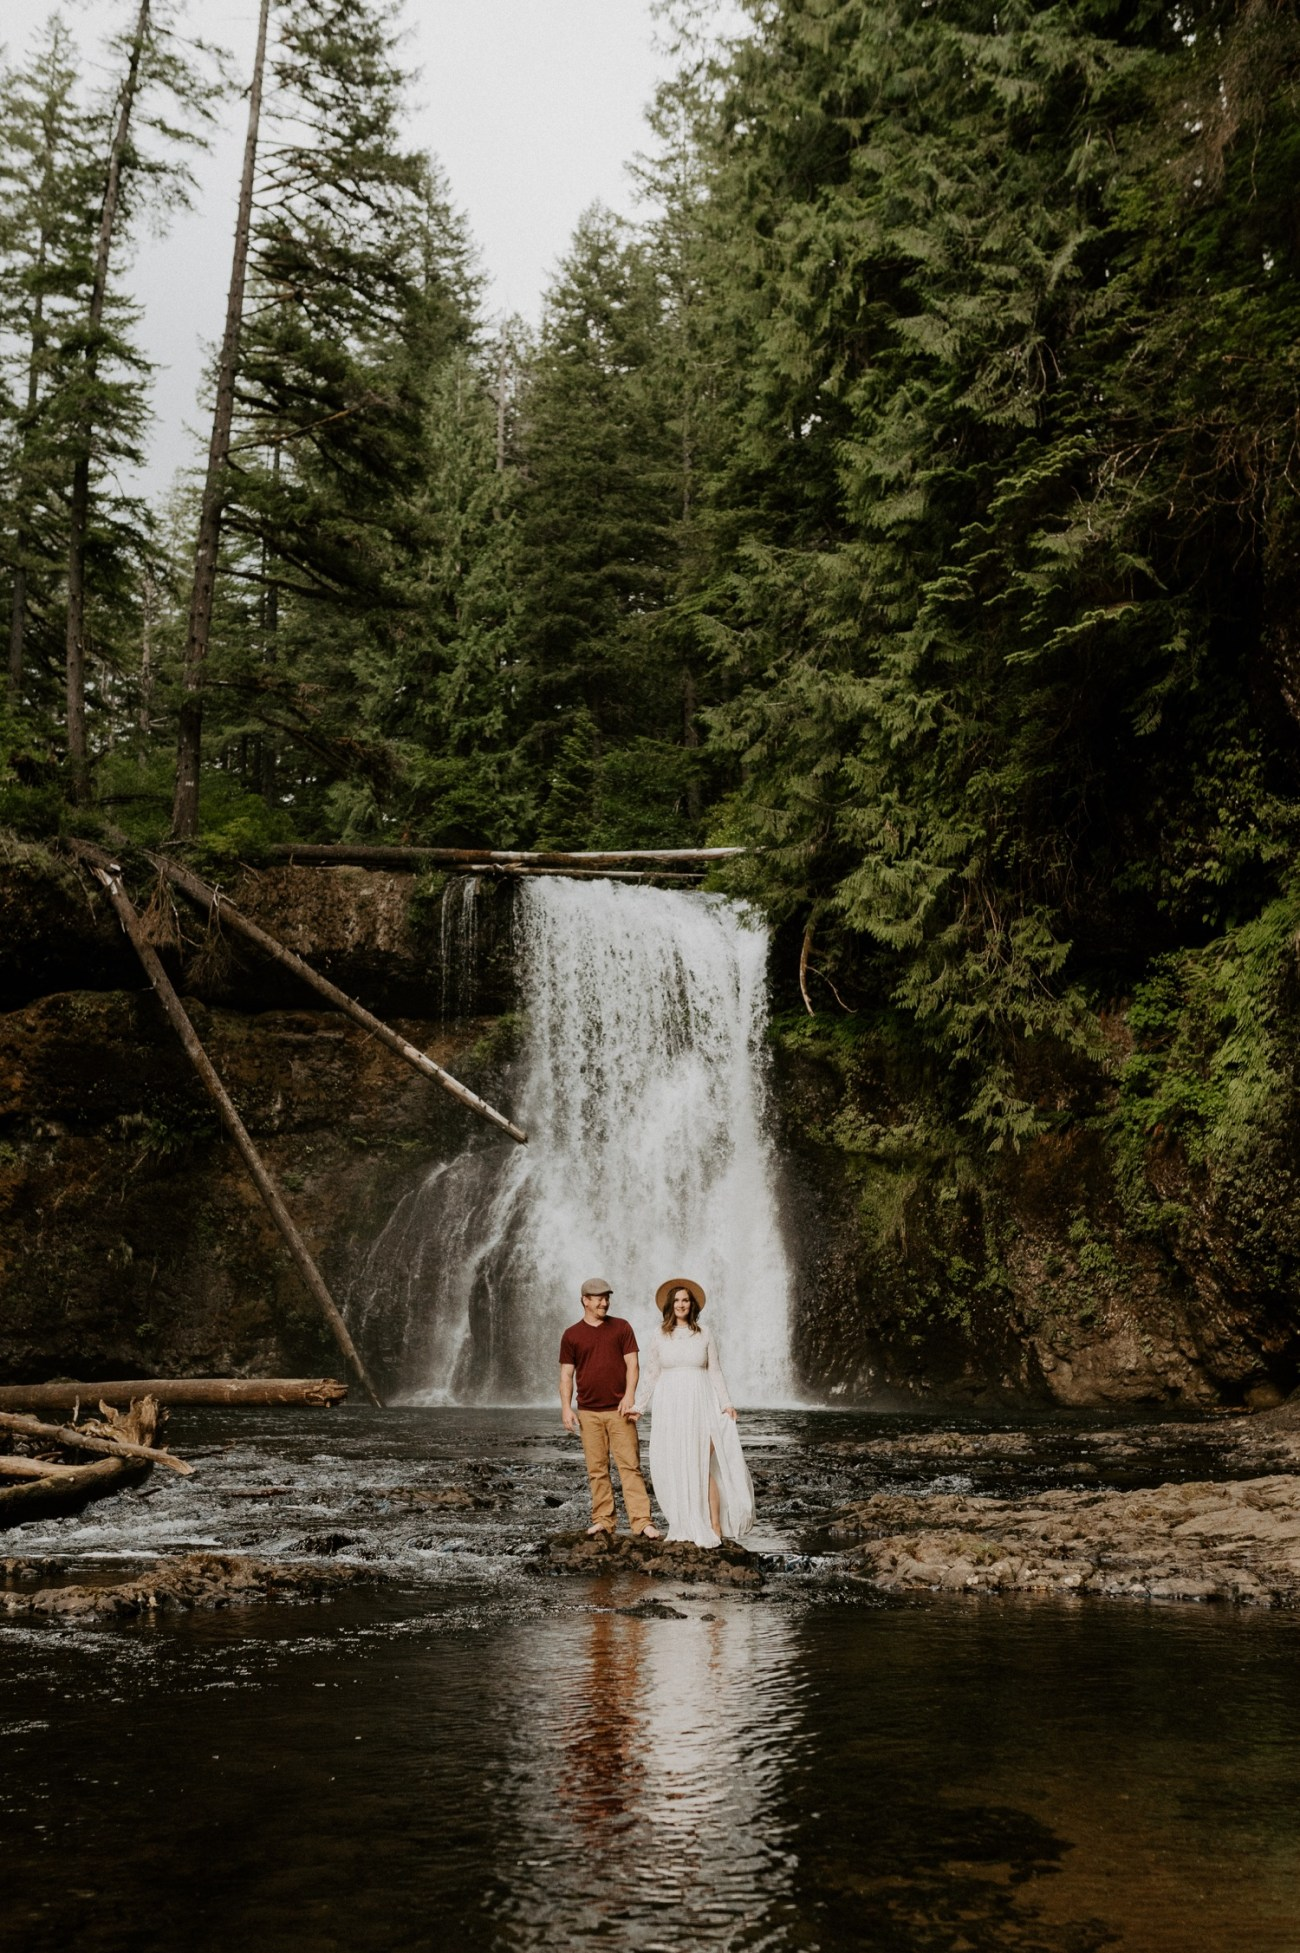 Silver Falls State Park Engagement Session North Falls Engagement Photos Portland Wedding Photographer Oregon Elopement Photographer Anais Possamai Photography 017